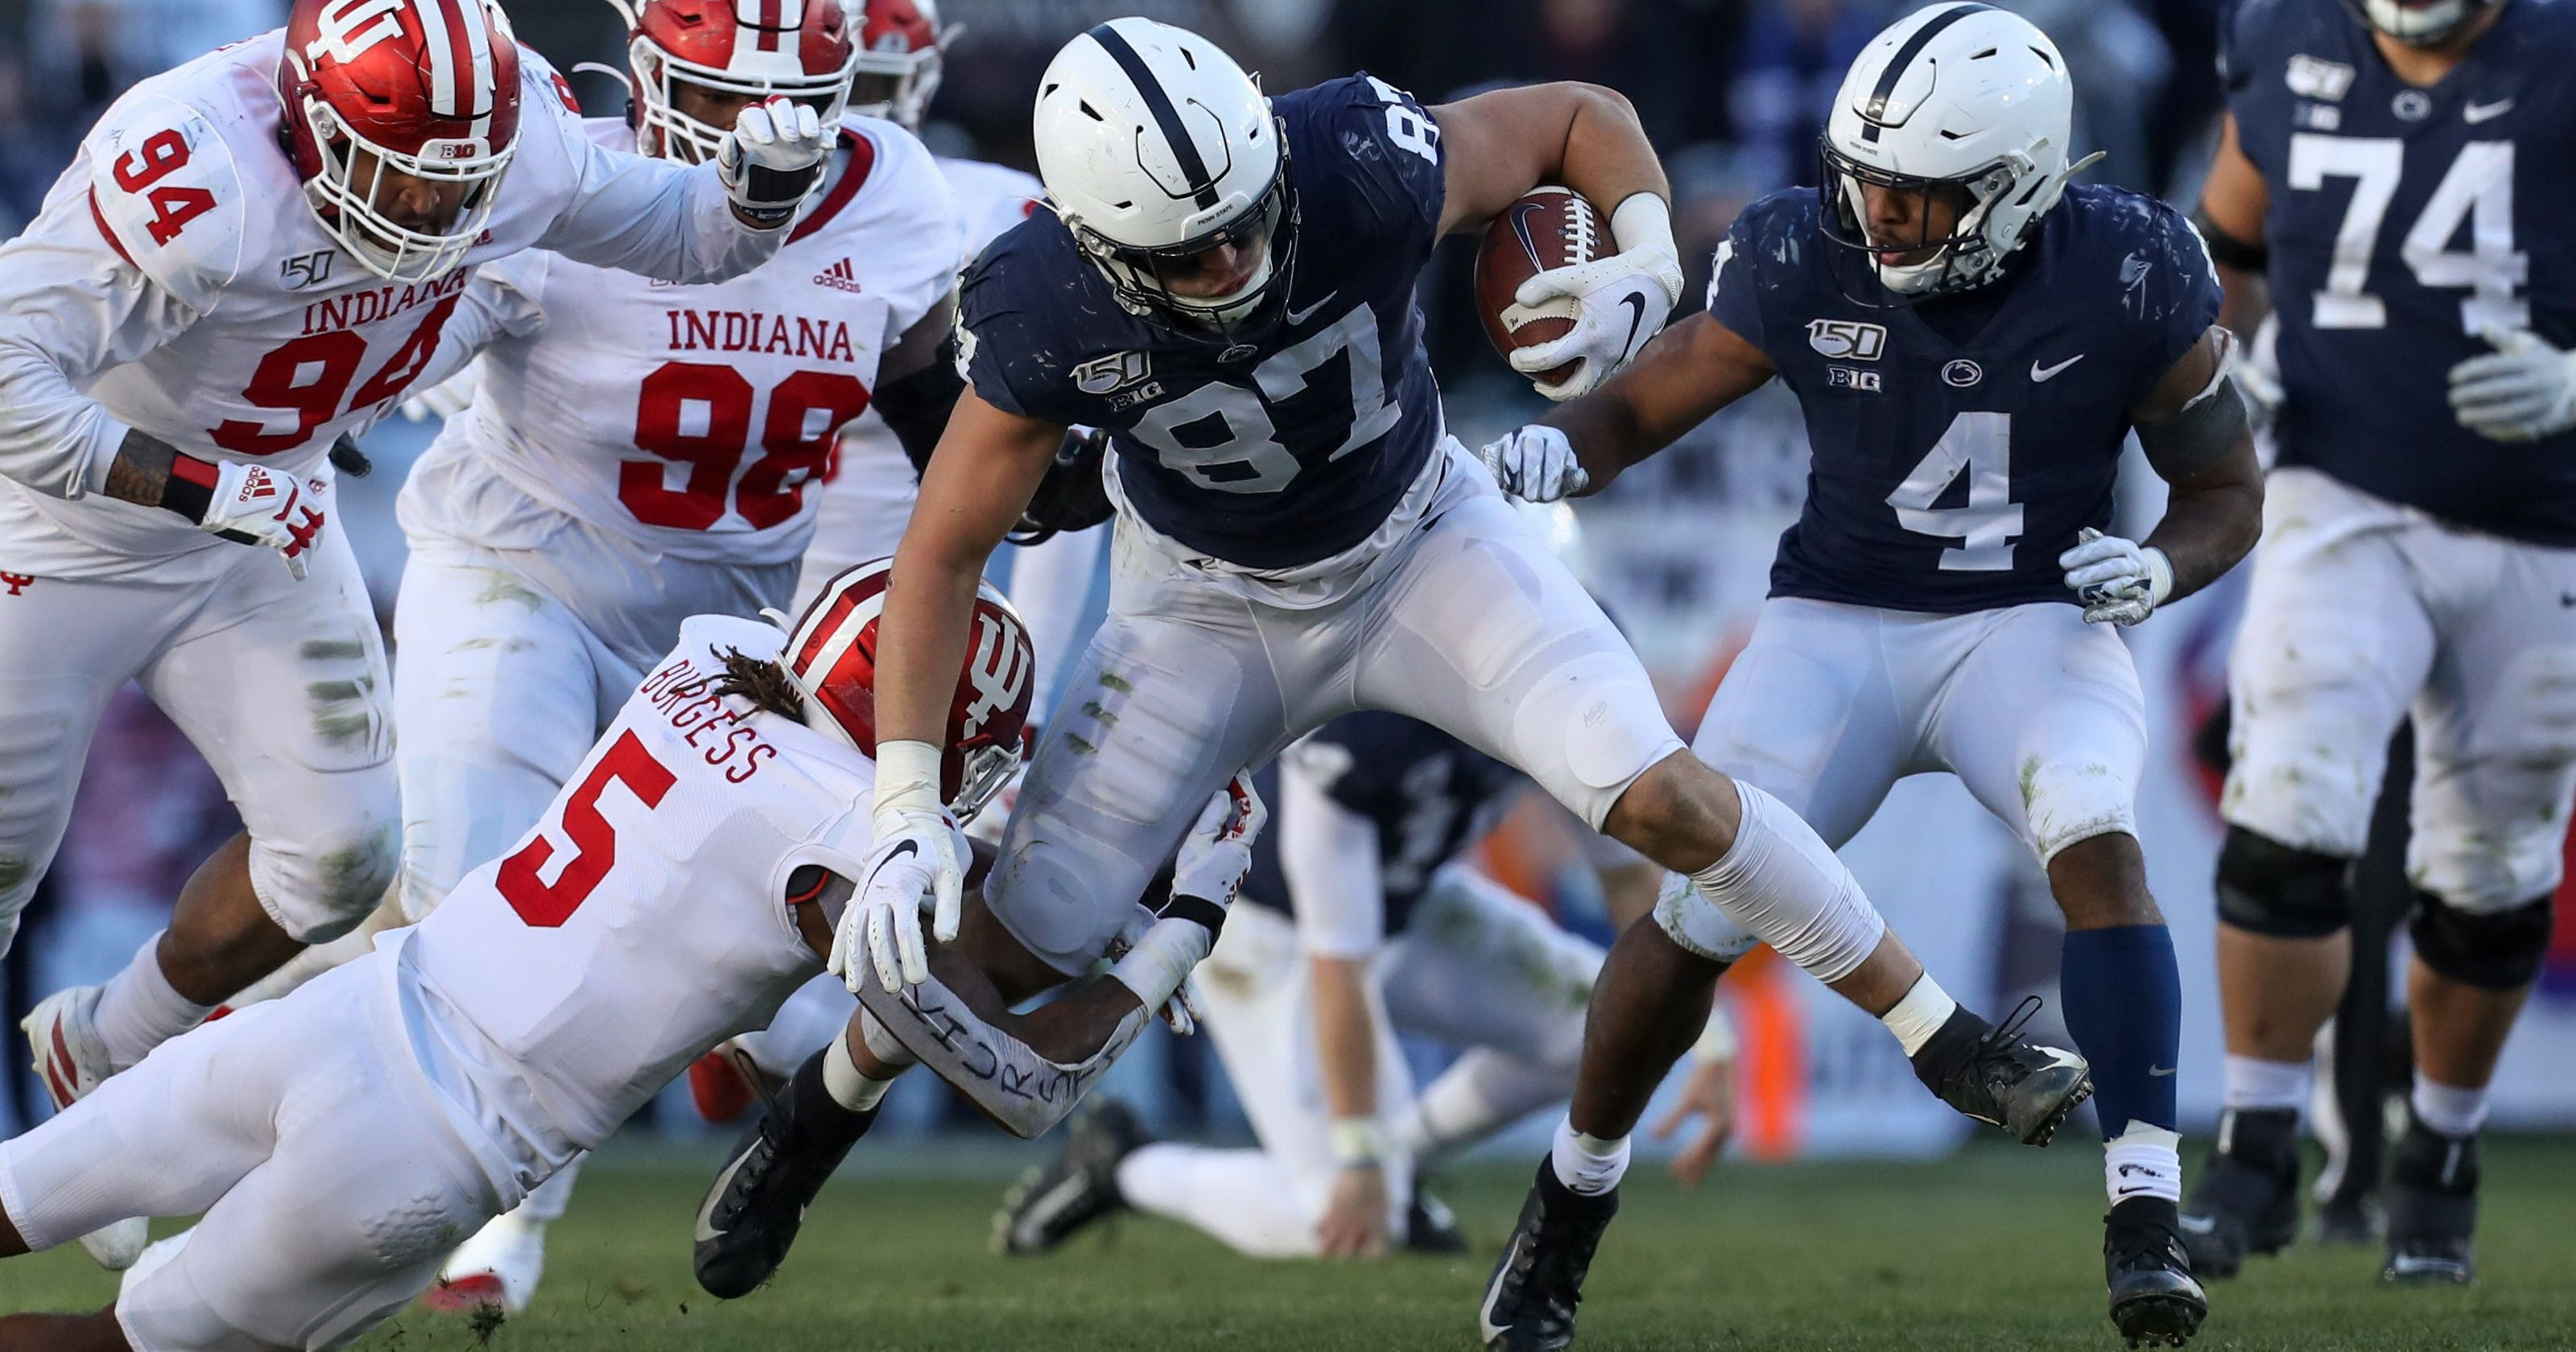 Penn State clarifies claim related to Big Ten athletes and myocarditis